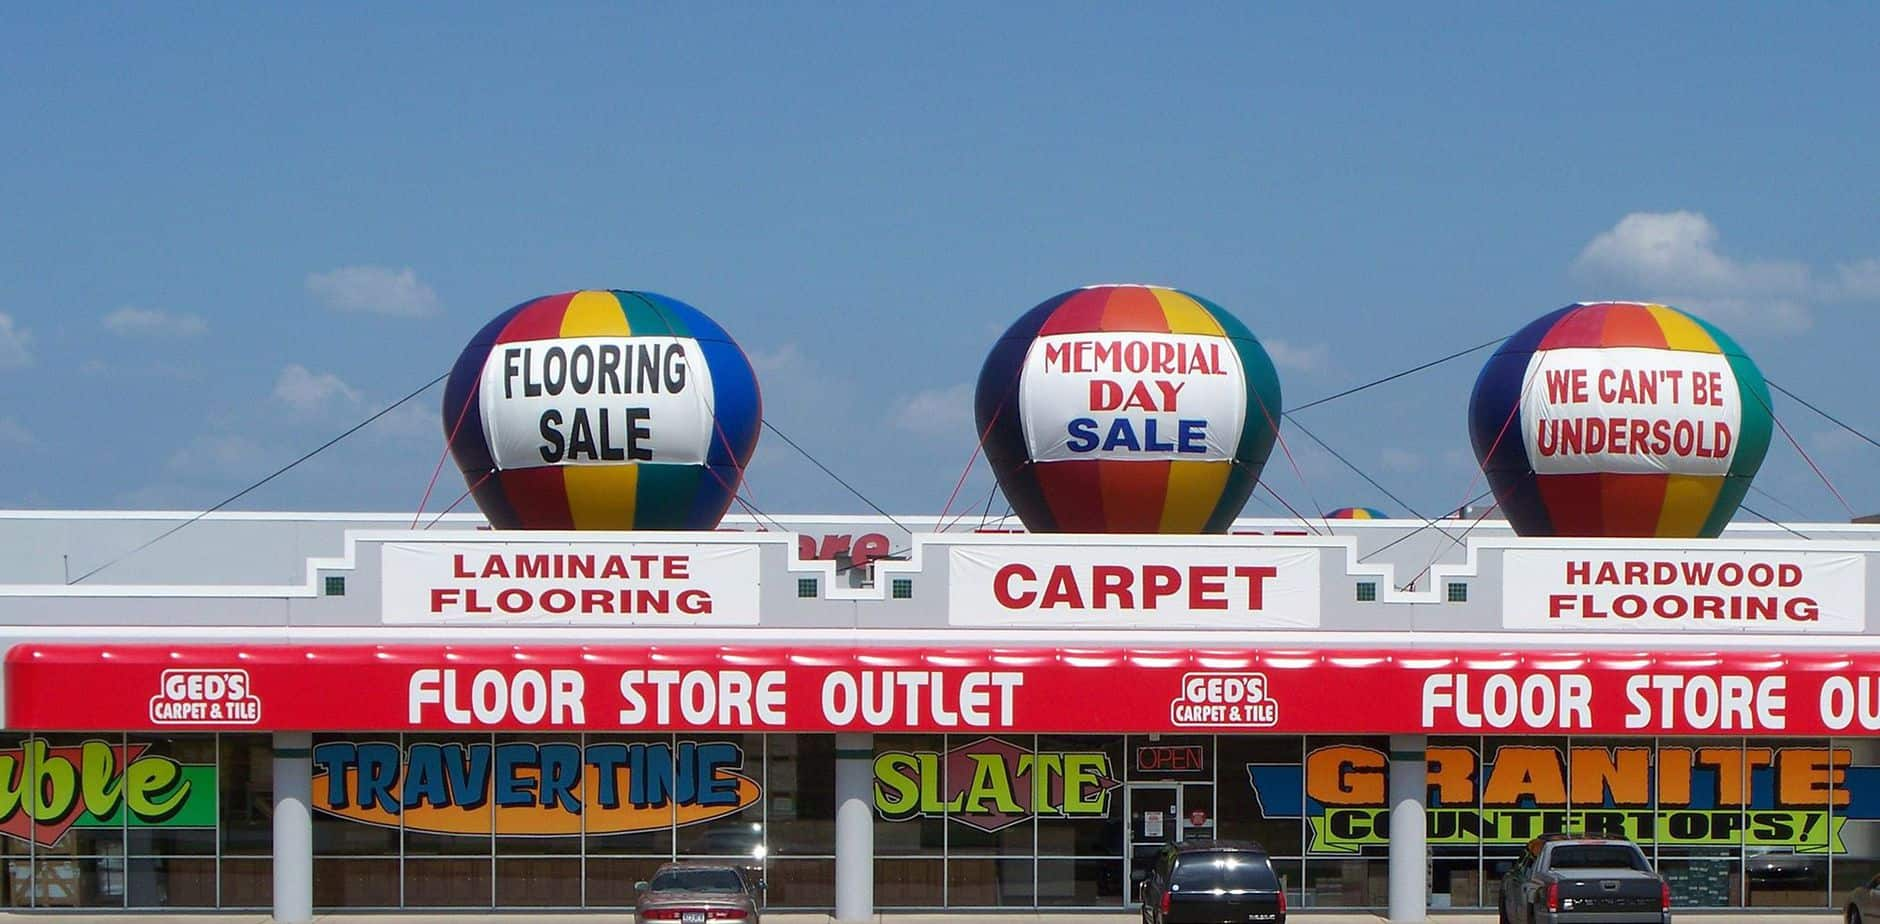 Advertising Balloons Air Ad Promotions